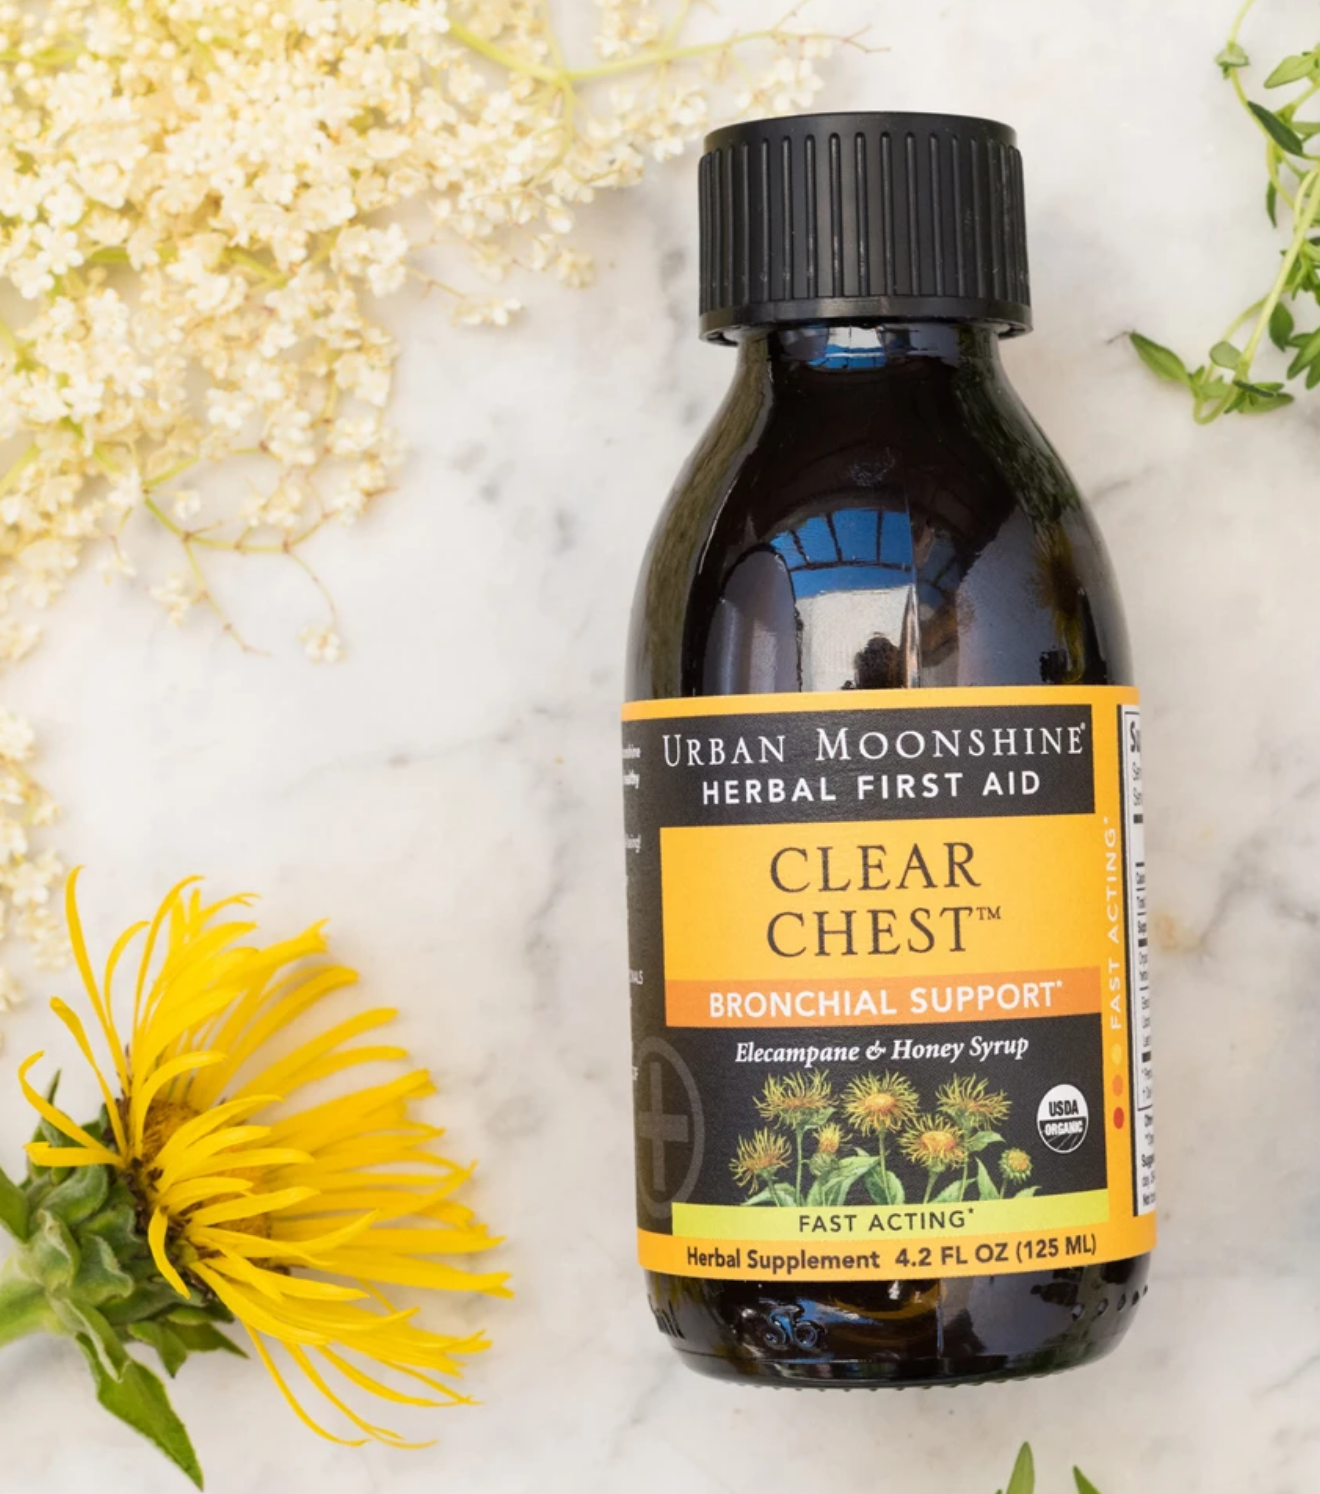 Clear Chest Herbal Syrup,Urban Moonshine 125 ml